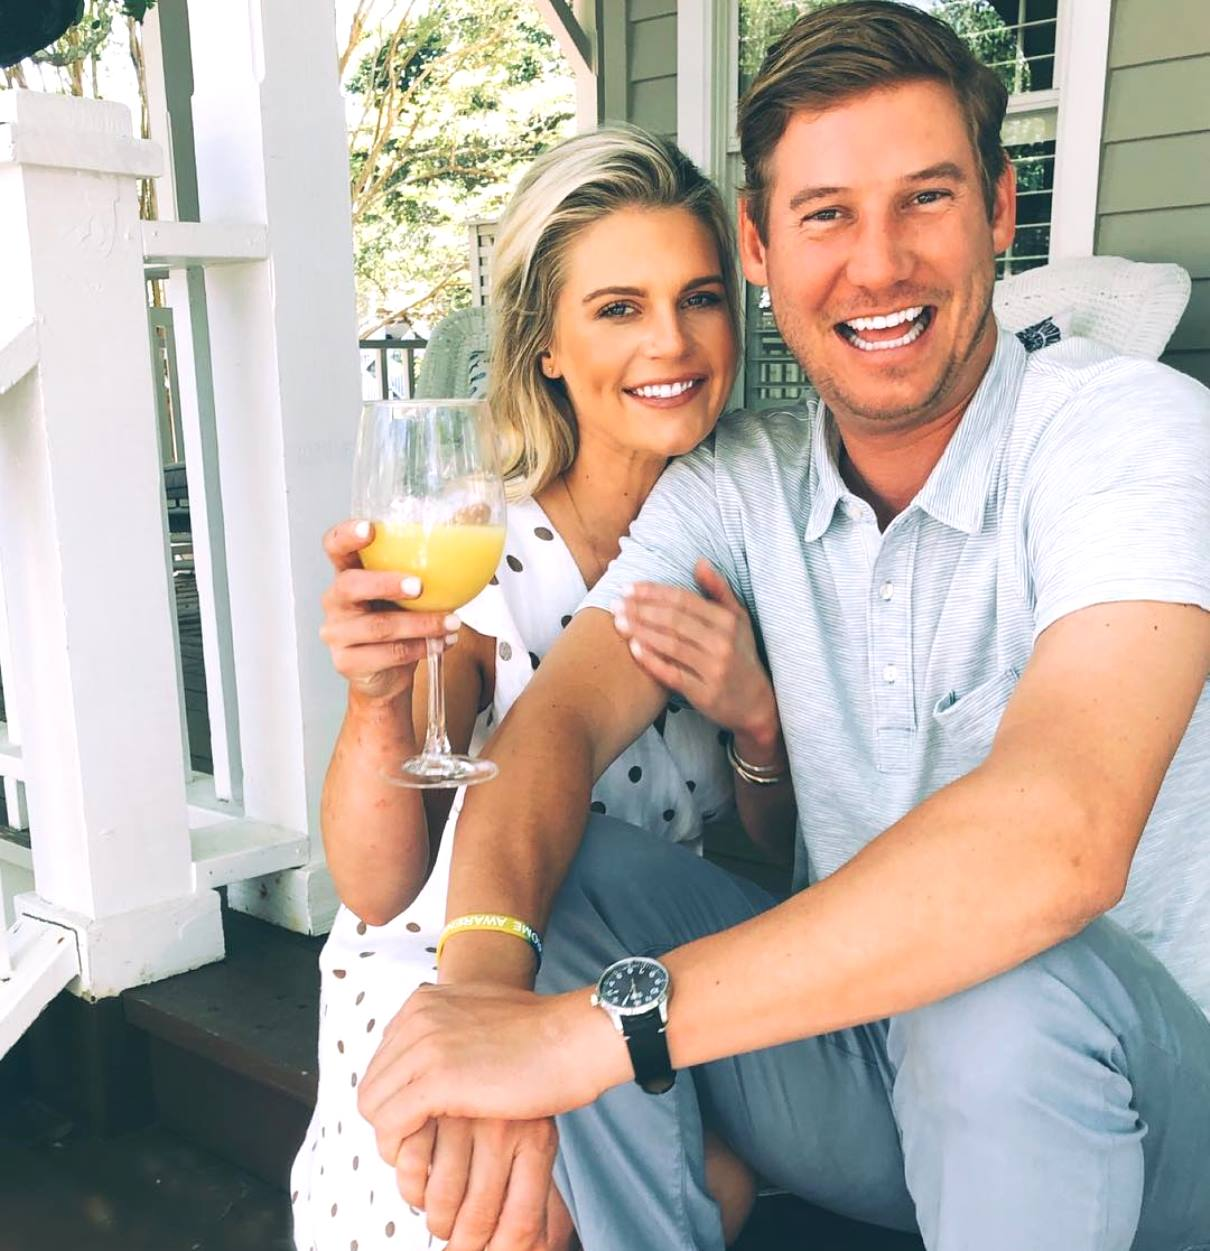 Are Southern Charm's Austen Kroll and Madison LeCroy Still Together? Get the Latest Update on Their Relationship Status!